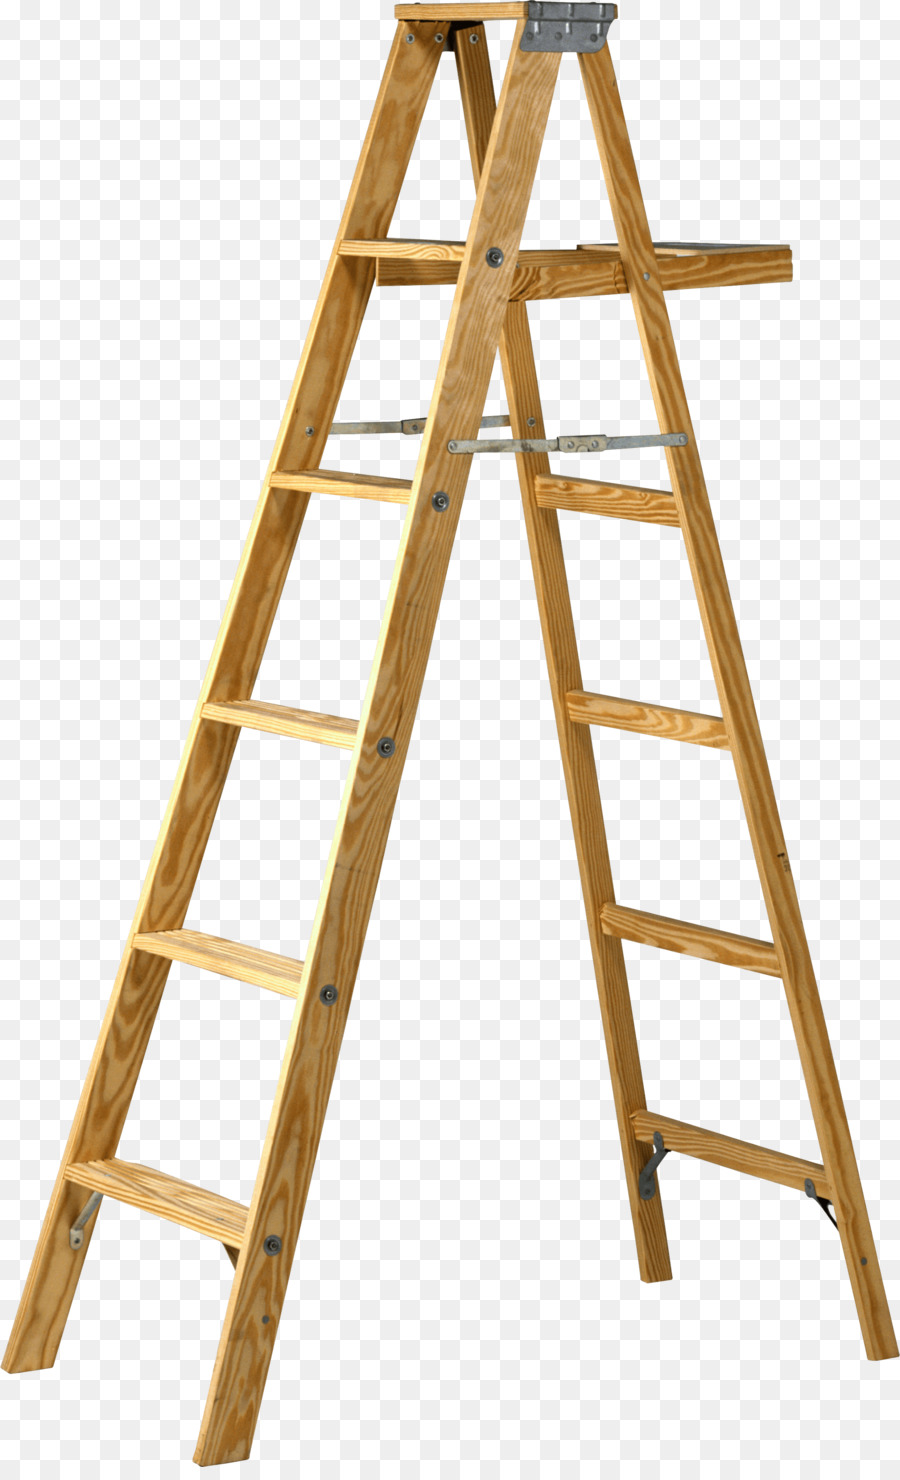 png royalty free library Cartoon clipart wood clip. Ladder transparent